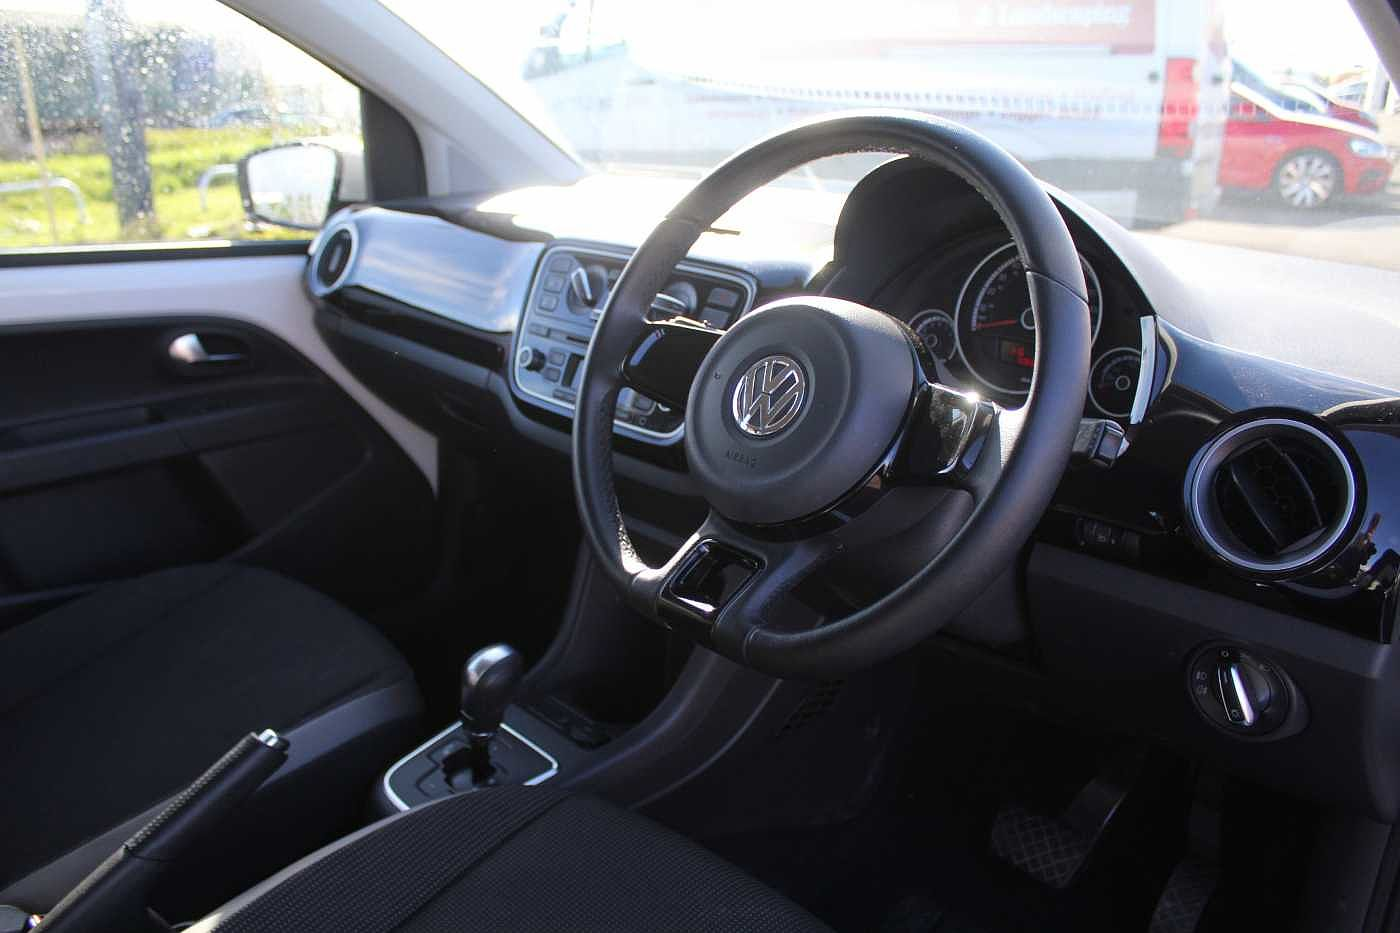 Volkswagen up! 1.0 75PS High ASG 5Dr